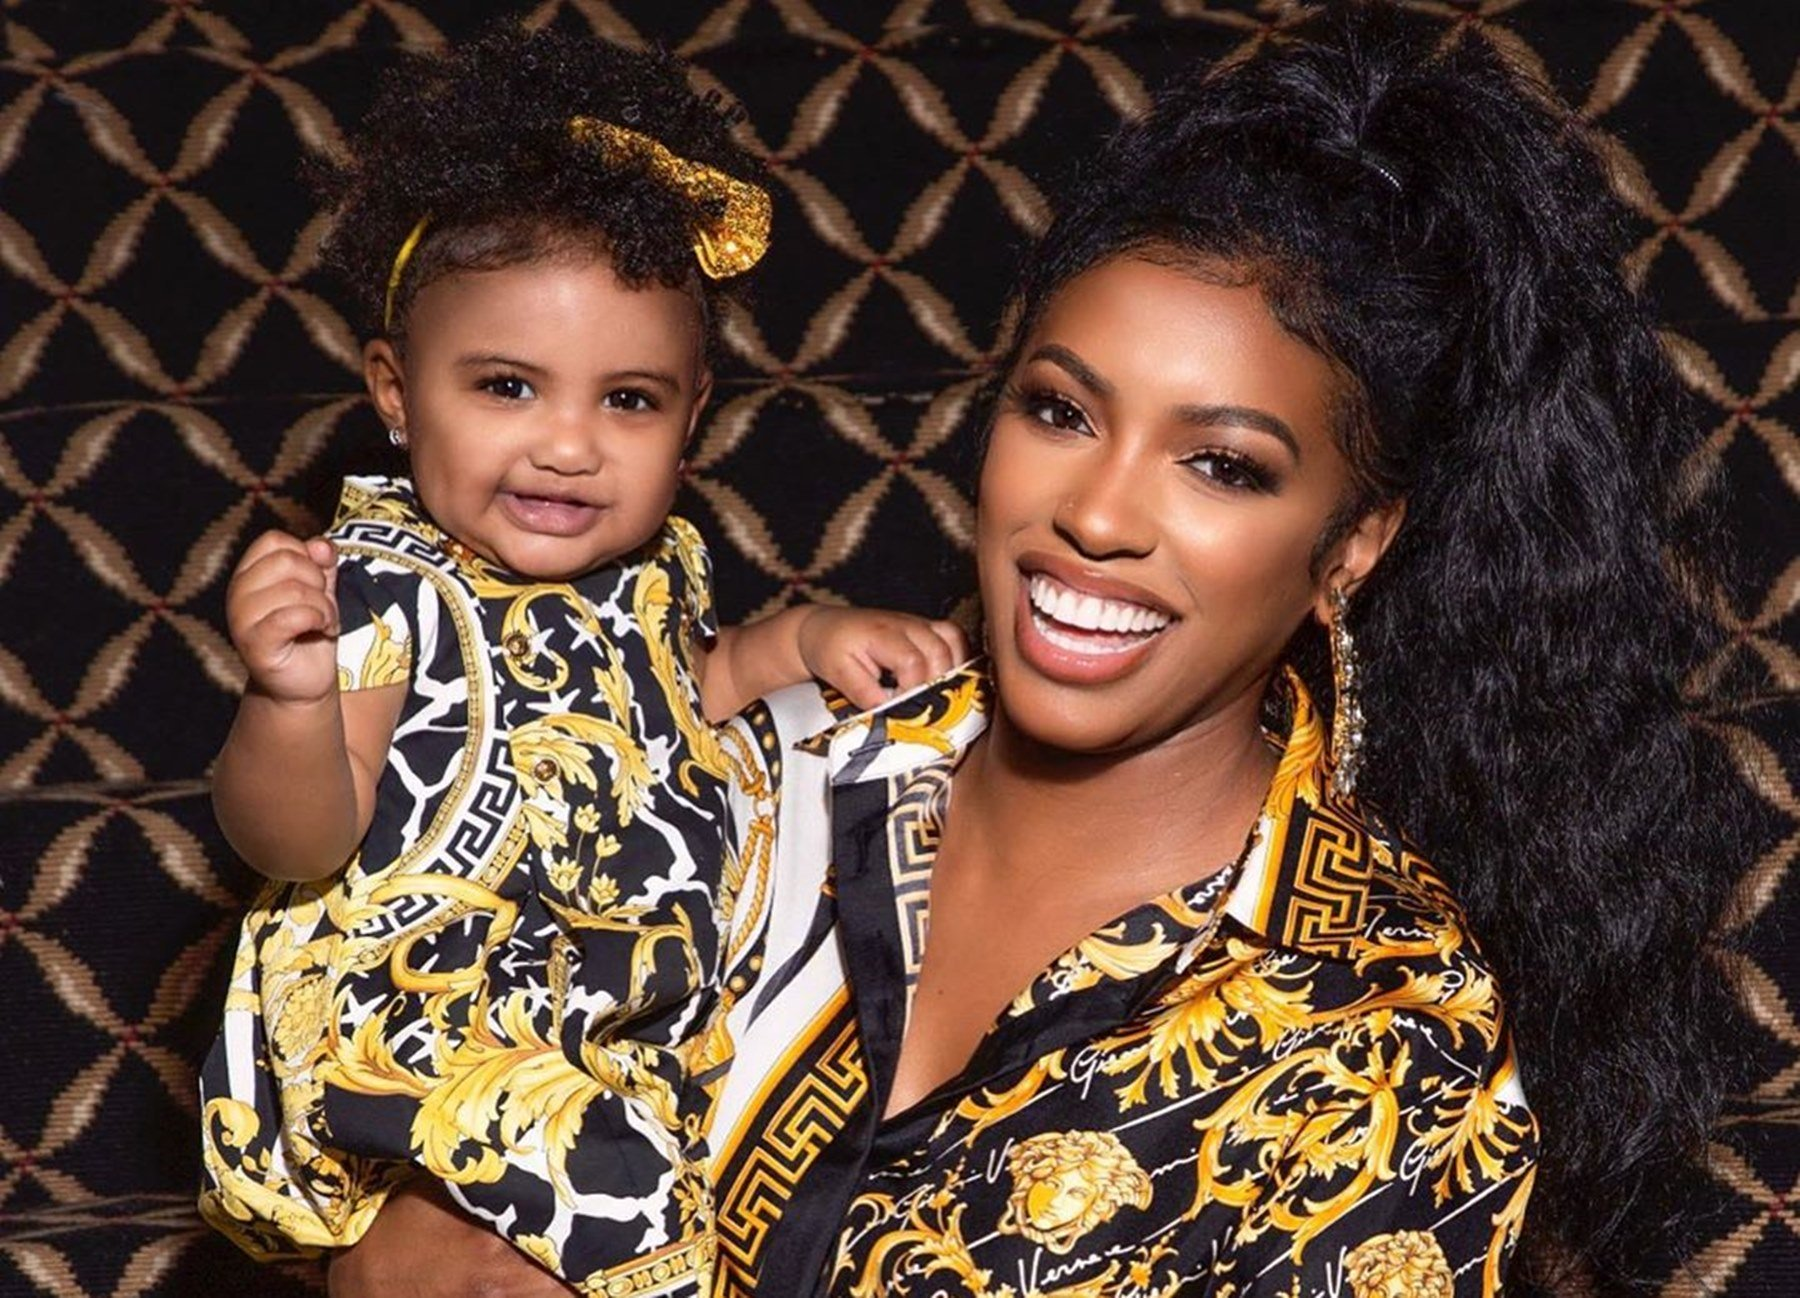 Dennis McKinley And Porsha Williams' Daughter, Pilar Jhena's Latest Photo Shoot Will Make Your Day